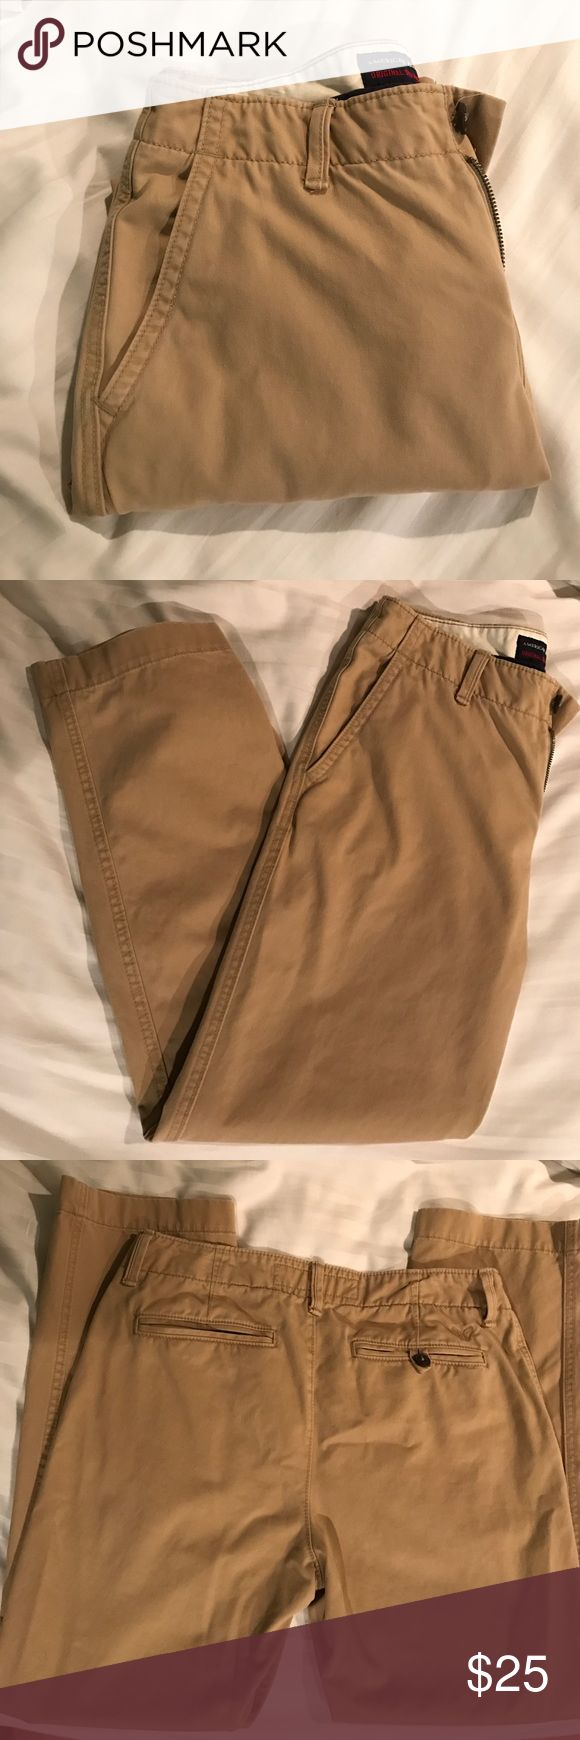 AE Men's Khaki Pants These American eagle khaki pants are in excellent condition (NWOT) and are great for any man looking to dress it up! These pants are original straight fit, 32x20, and 100% cotton. American Eagle Outfitters Pants Chinos & Khakis